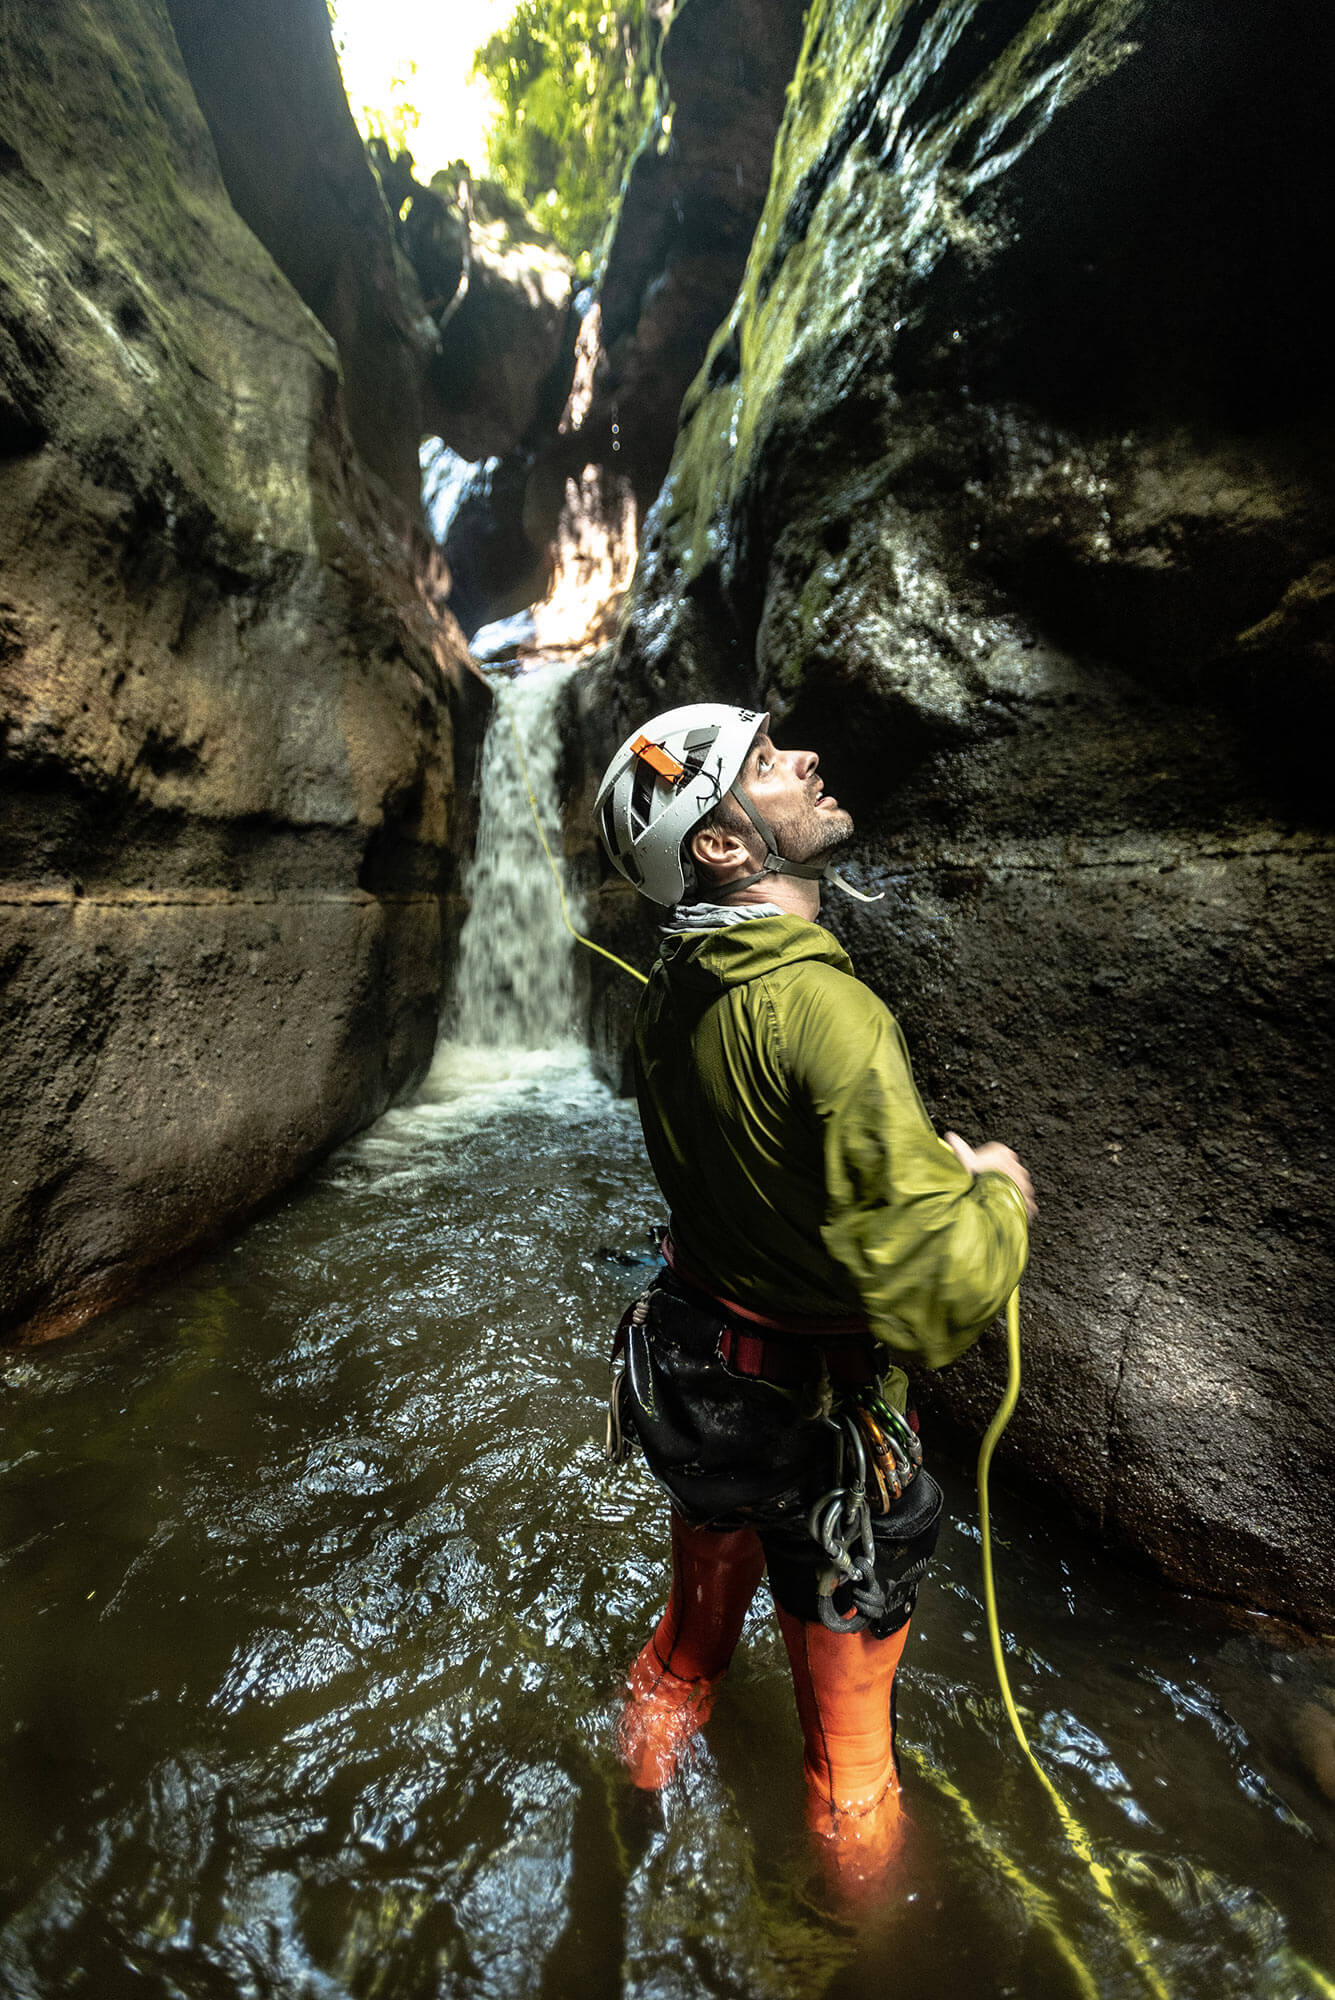 Rebelay canyoning editor Gus Schiavon looking up inside a canyon in Bali, Indonesia